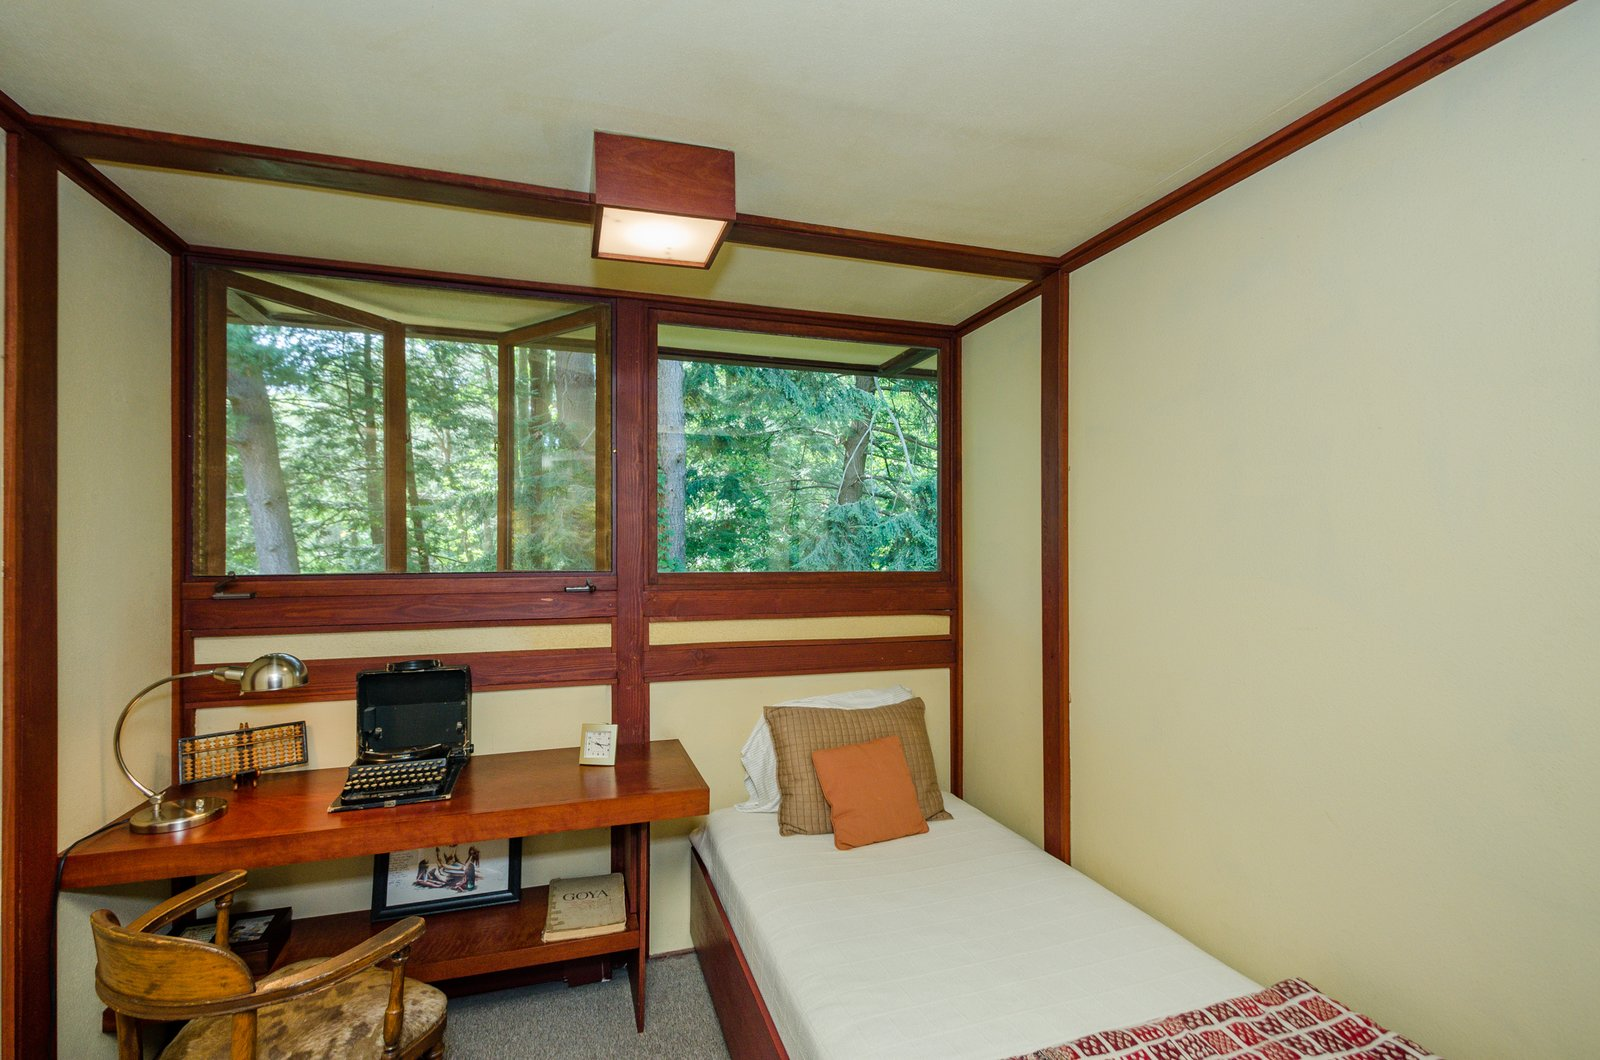 Photo 14 of 17 in The Frank Lloyd Wright-Designed Louis Penfield House in Ohio Is For Sale For $1.3M